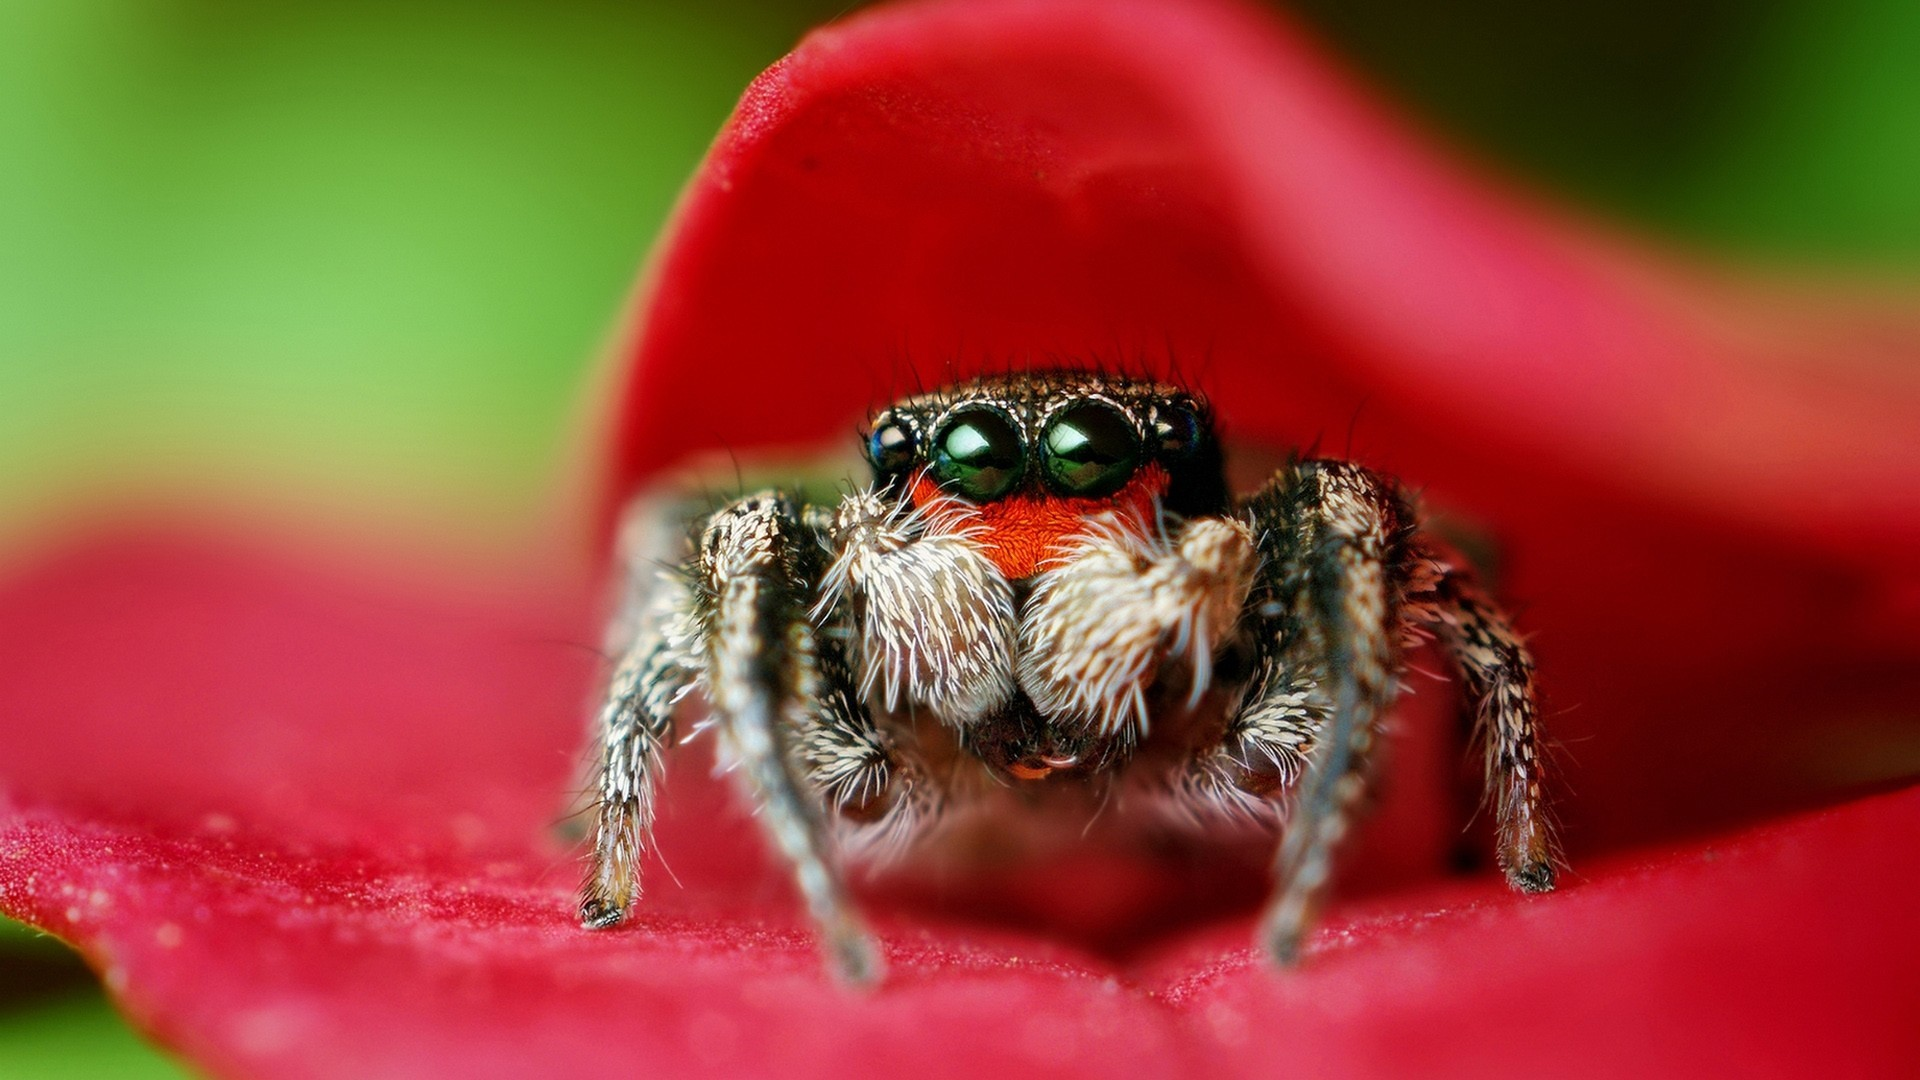 insects spiders arachnids HD Wallpaper